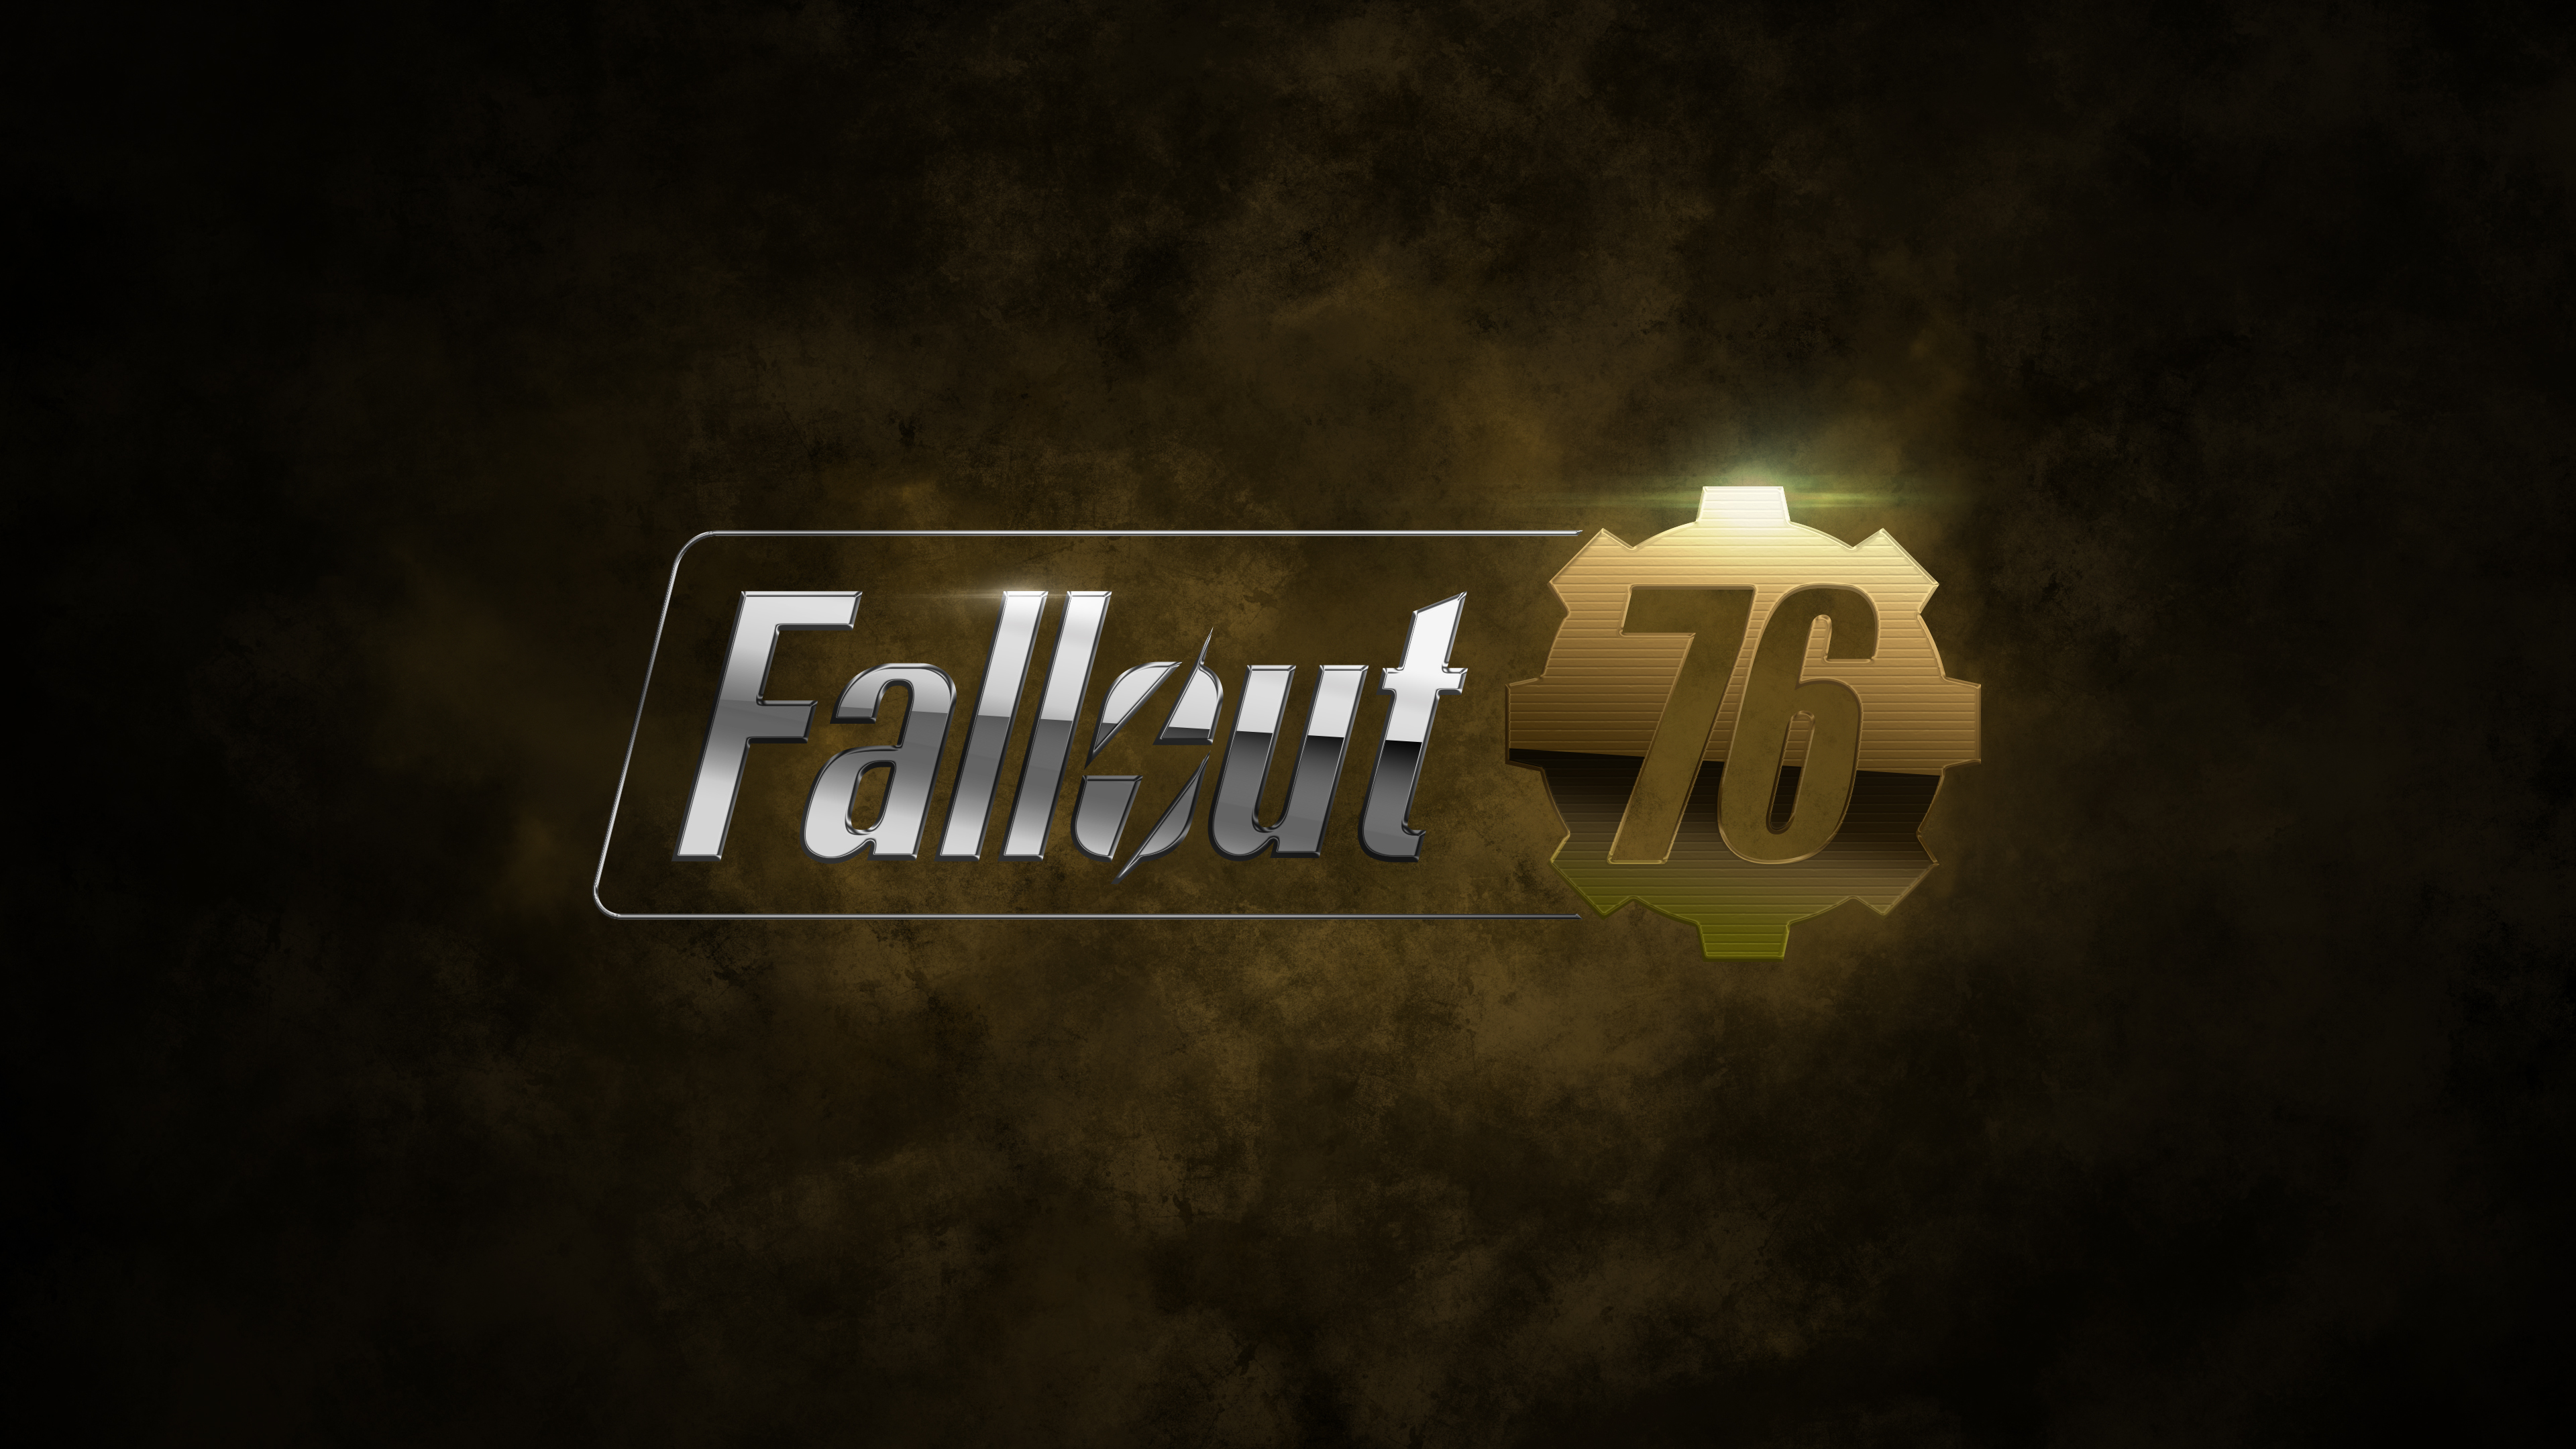 Fallout 76 Game Logo 4k Hd Games 4k Wallpapers Images